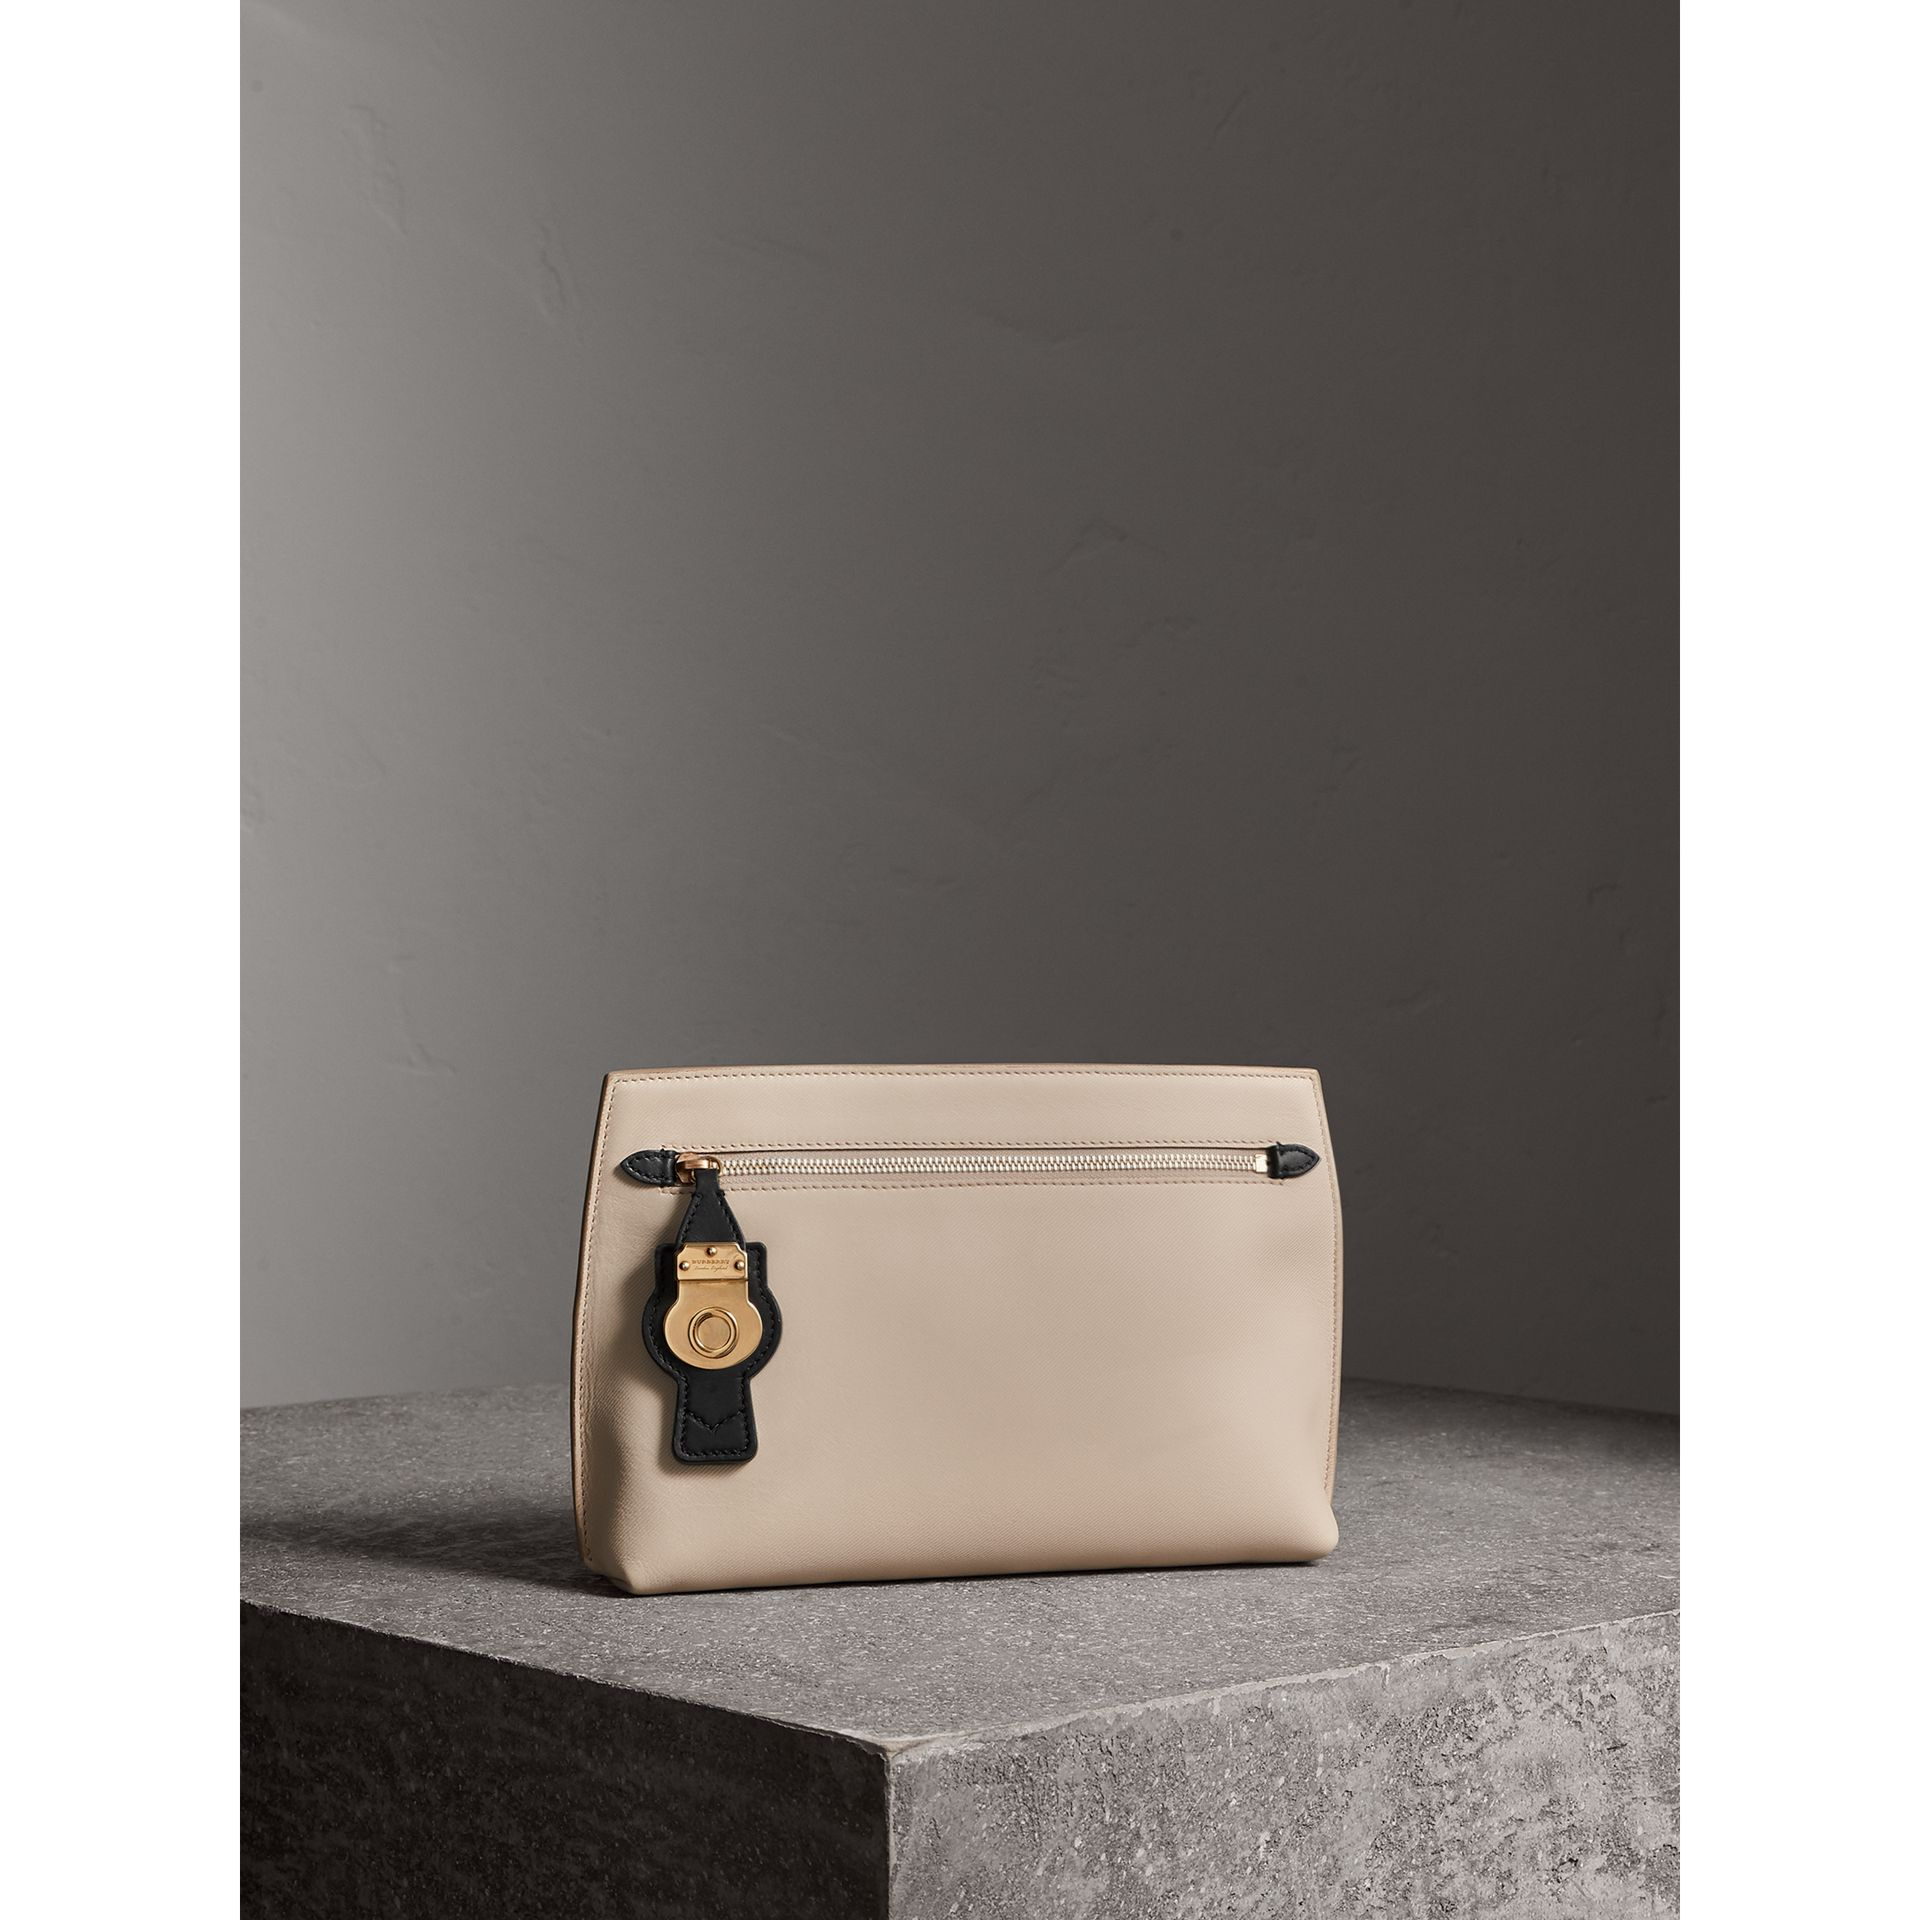 Two-tone Trench Leather Wristlet Pouch in Limestone/black - Women | Burberry - gallery image 6